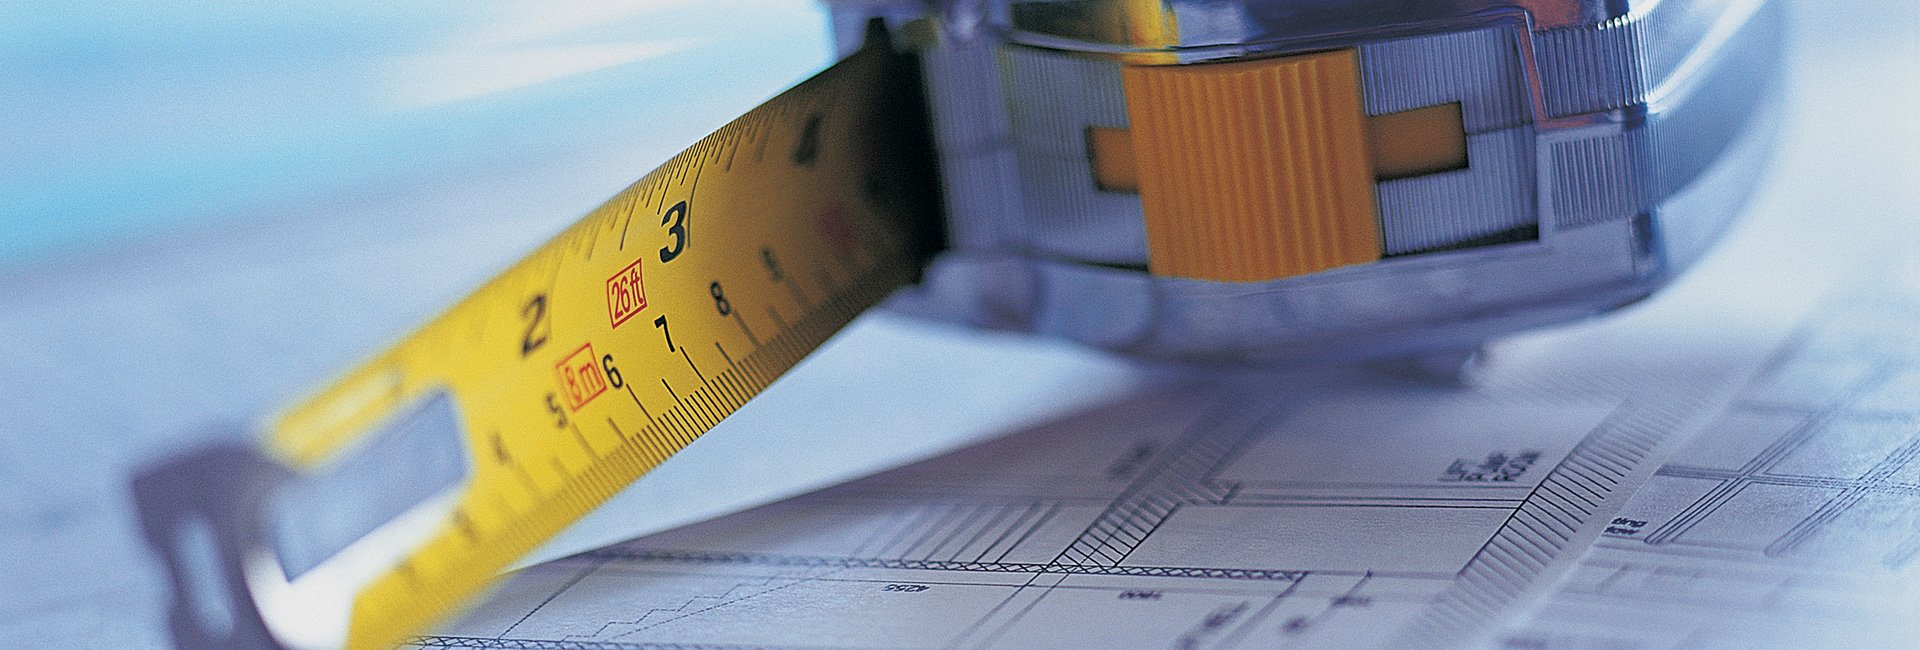 Yellow and silver tape measure on top of architects building plans